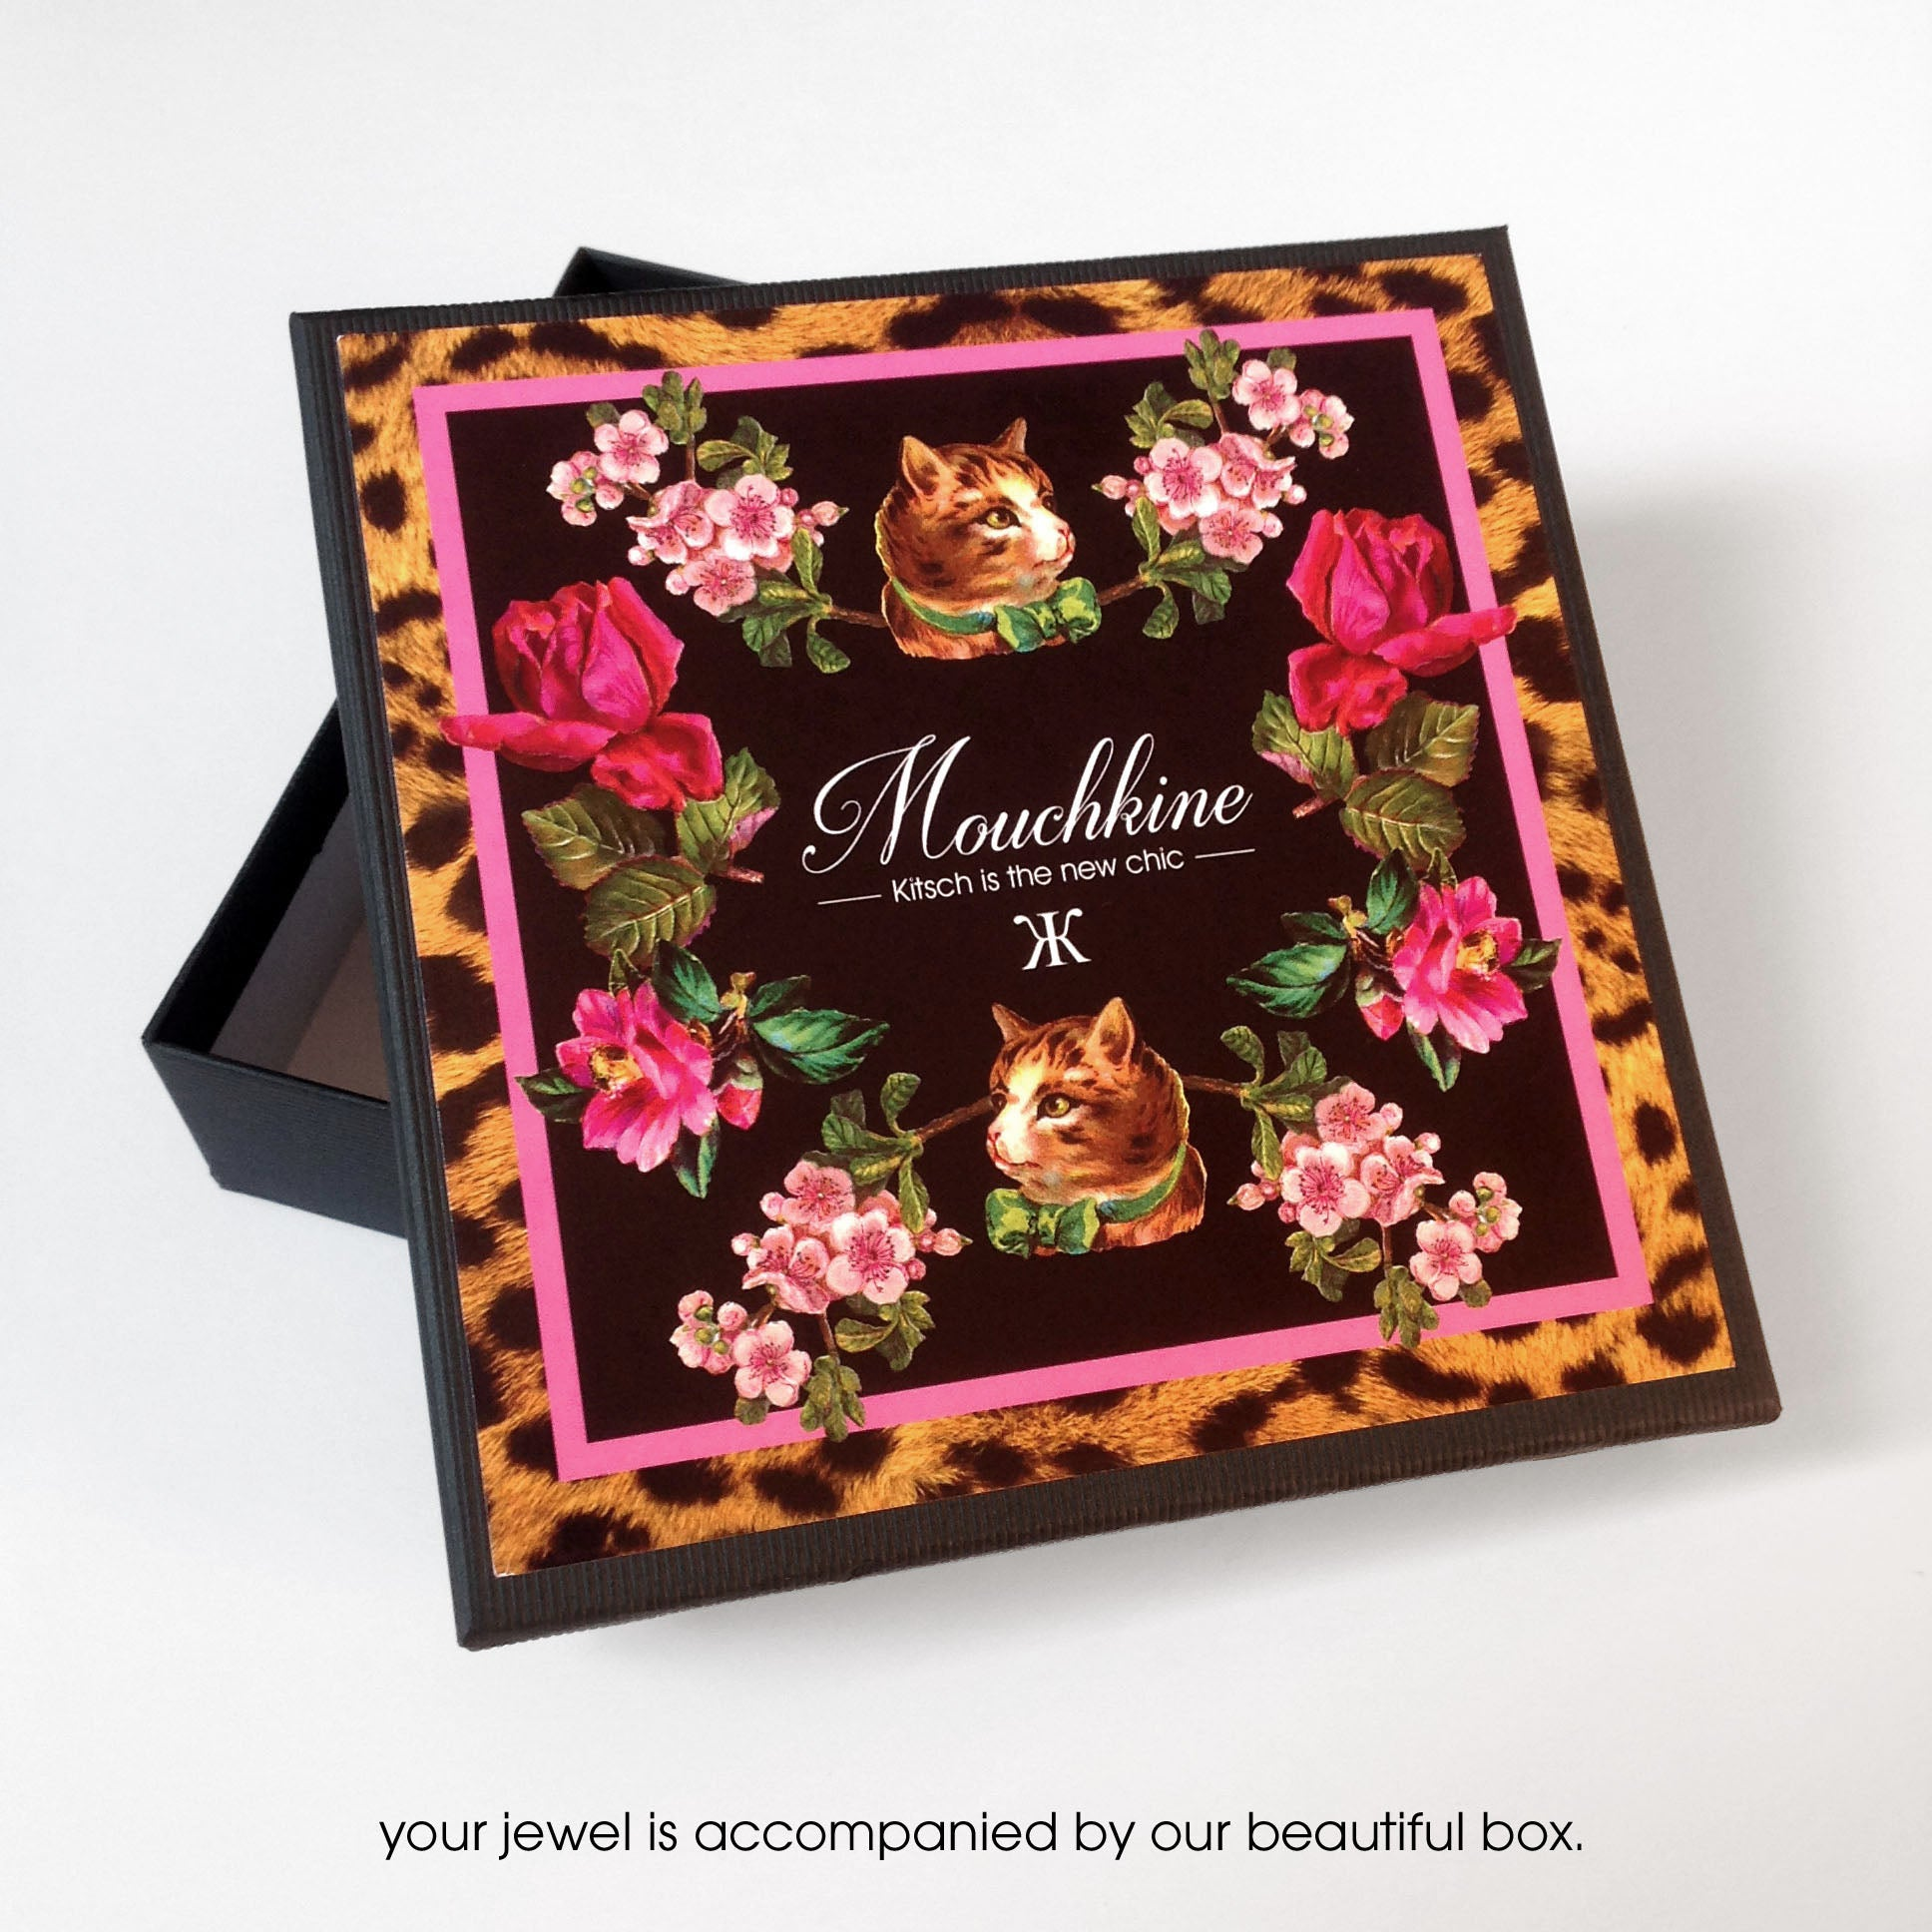 mouchkine jewelry luxury chic and trendy packaging